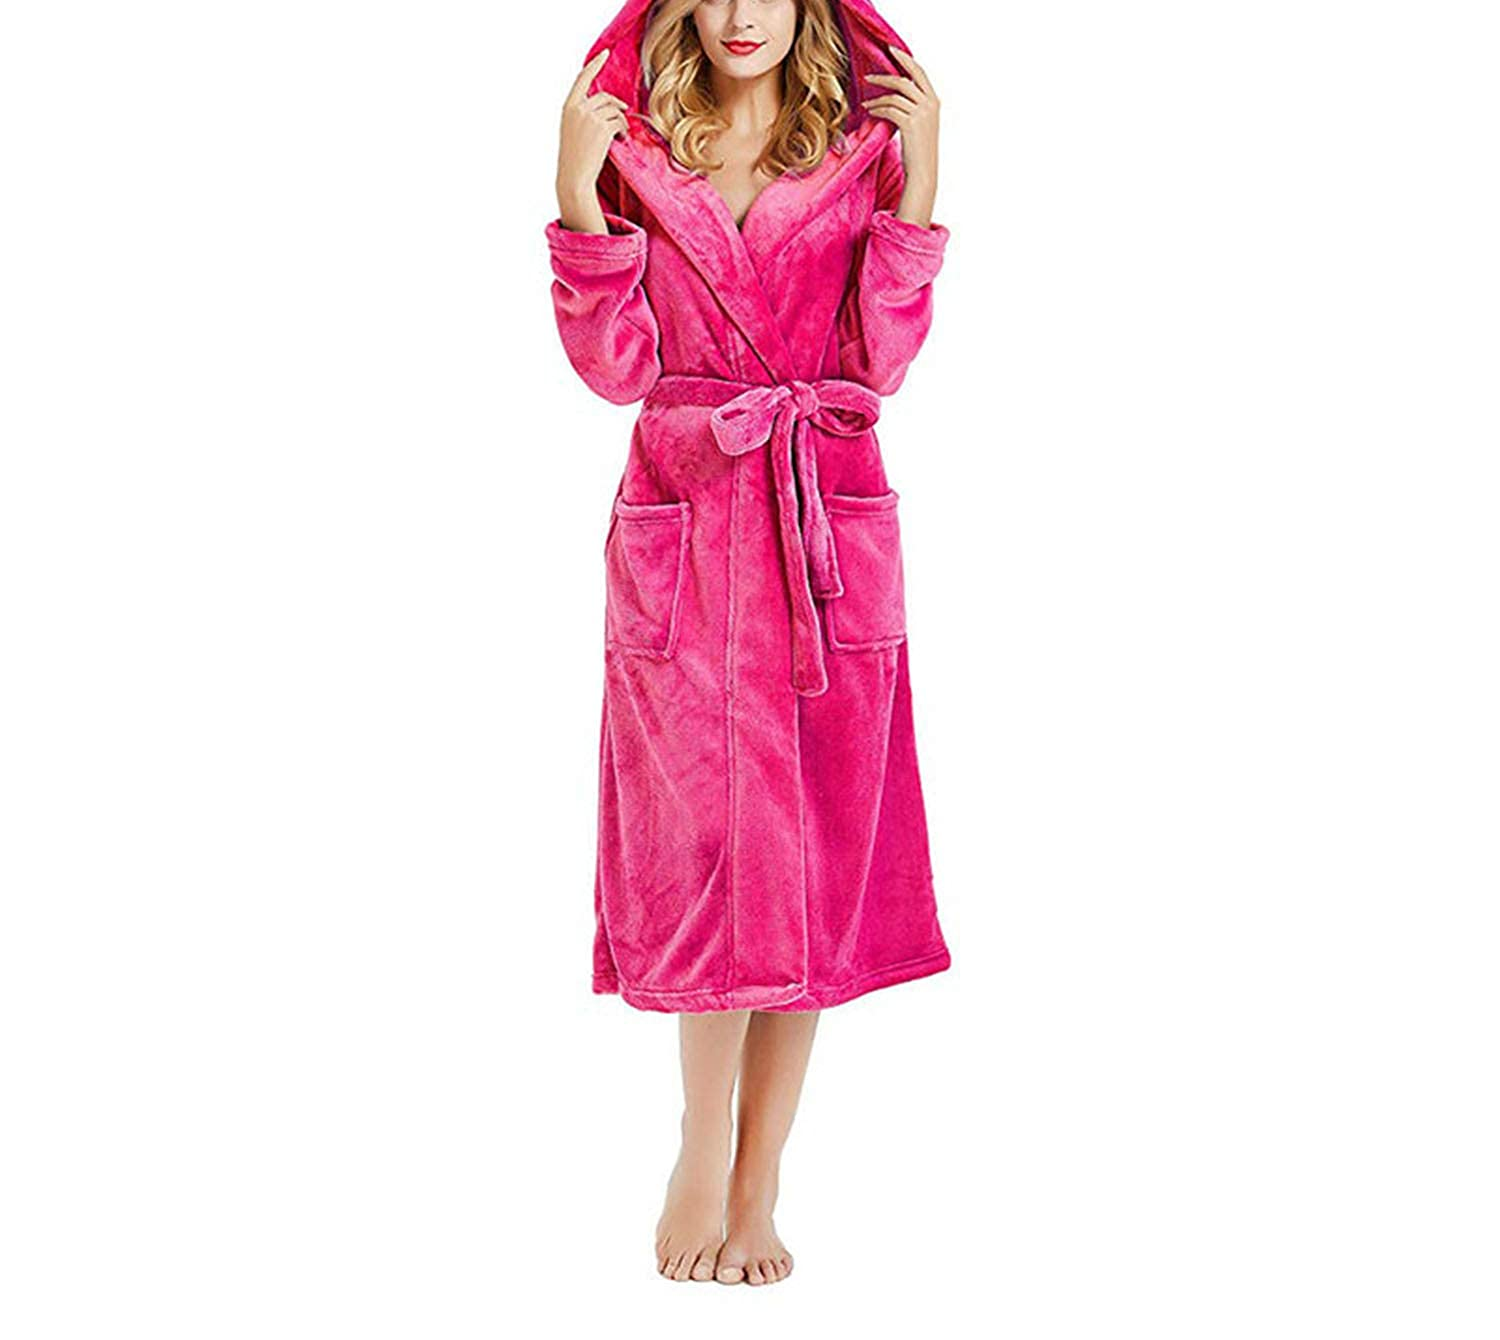 Red Little Happiness Women's Hooded Thick Robes Plush Cashmere Bathrobe Plush Kimono Sleepwear Nightgown Winter Robes